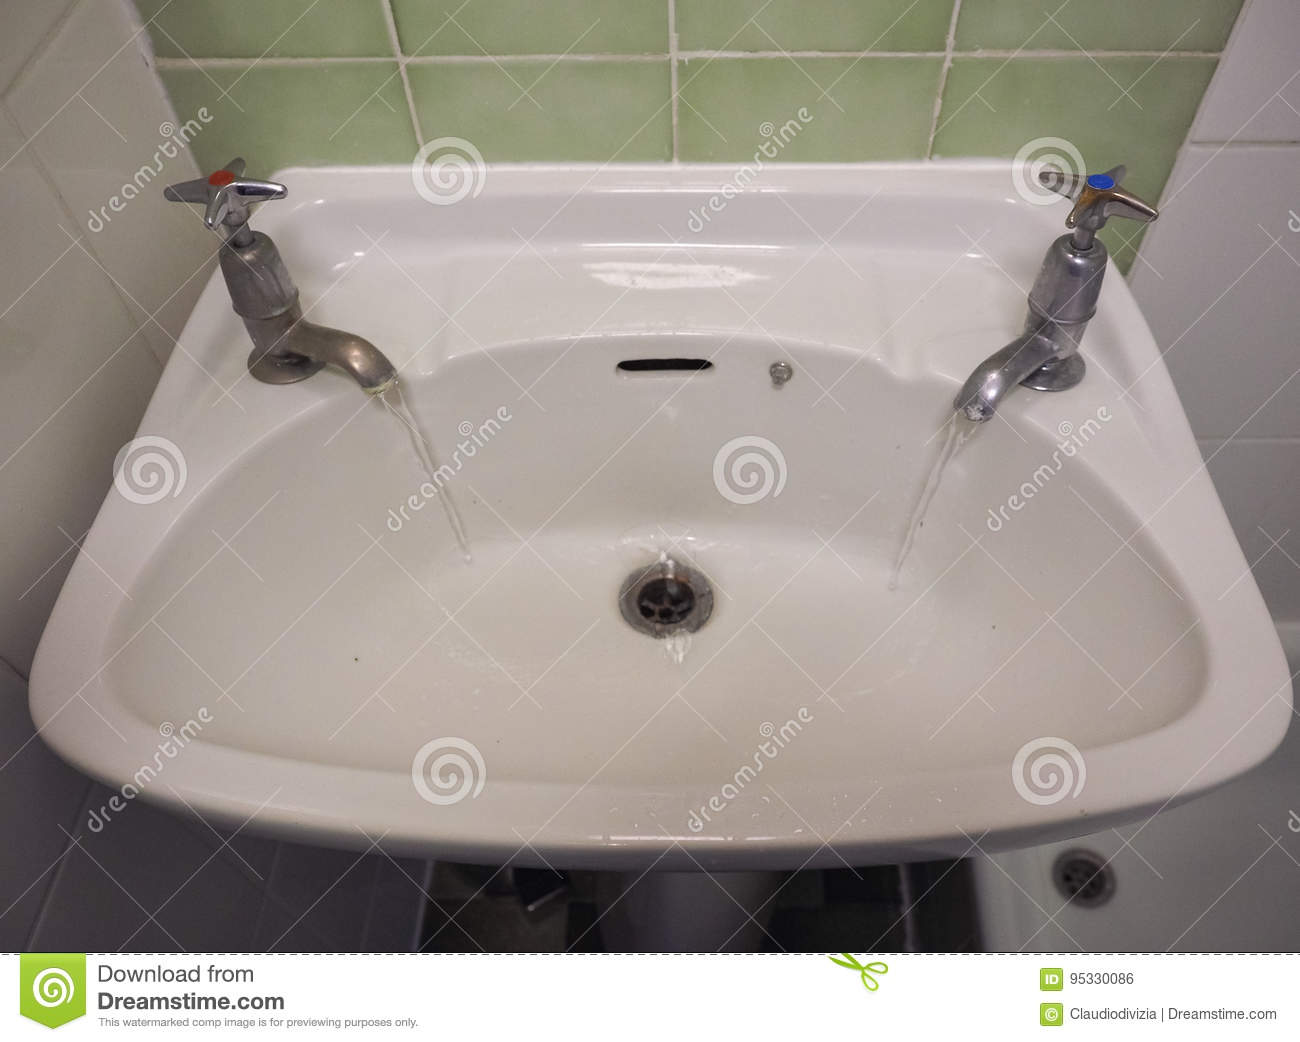 British water basin stock photo. Image of water, cold - 95330086